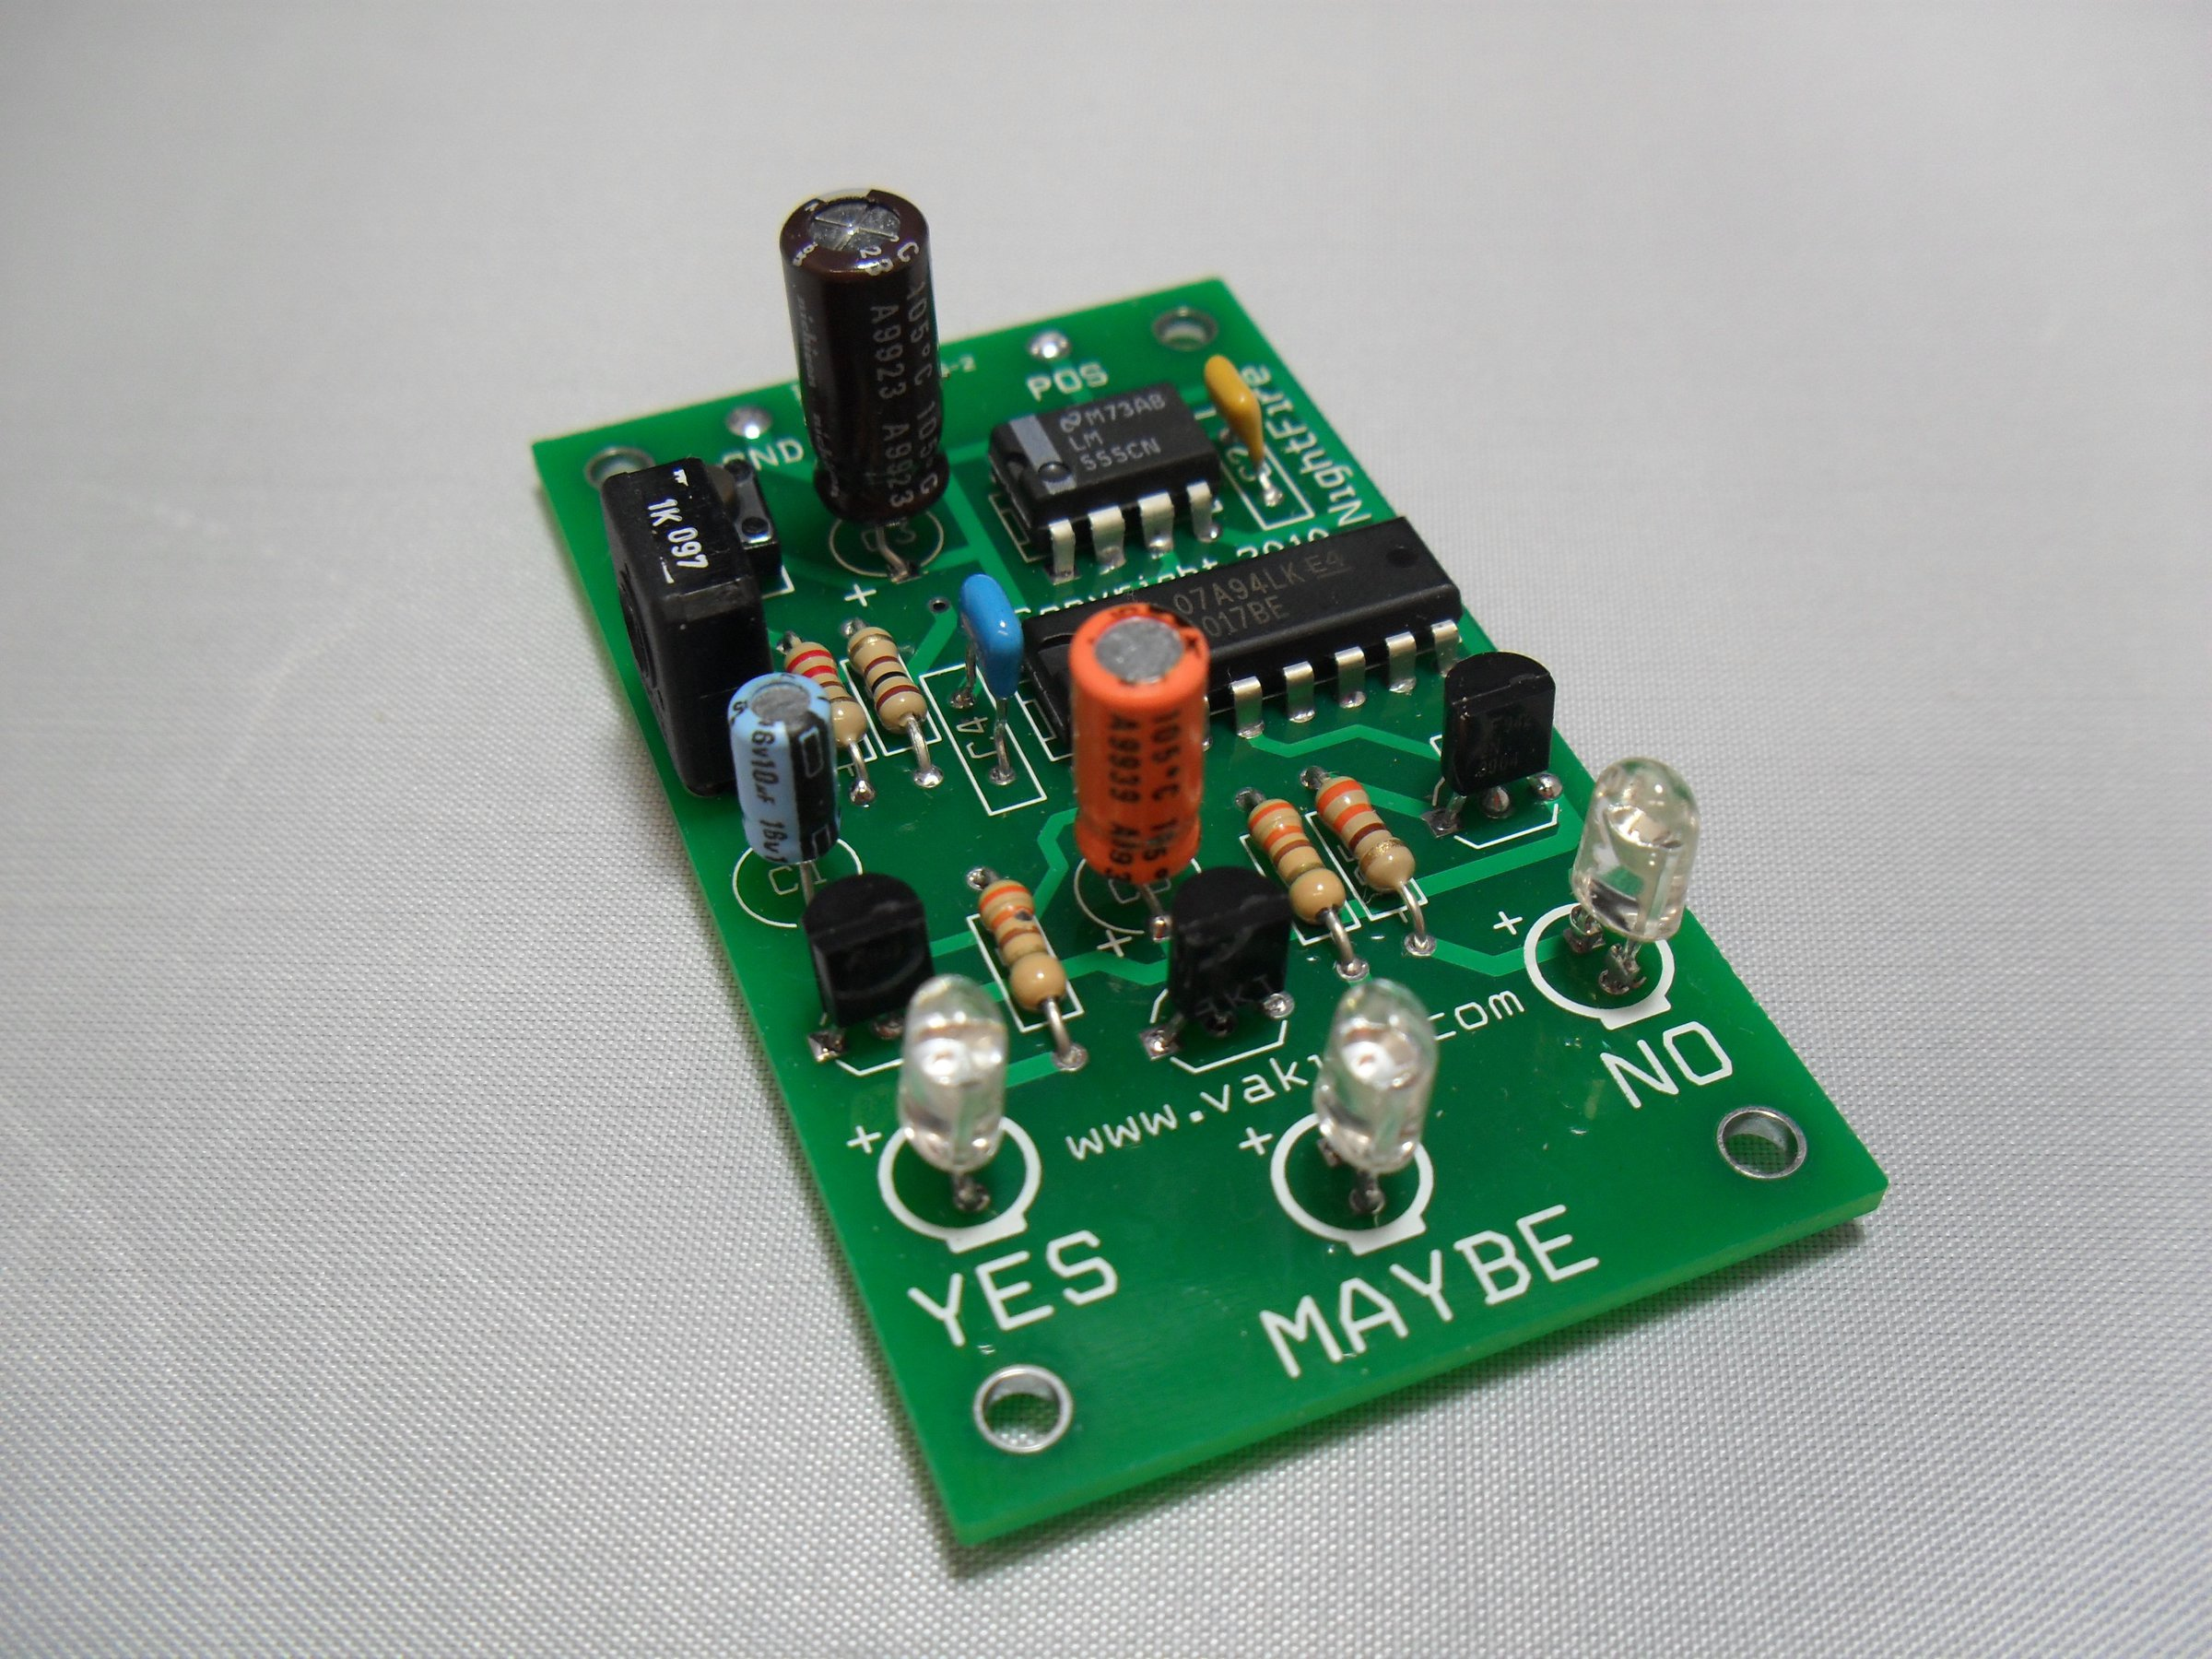 Electronic Decision Maker Kit 1743 From Nightfire Electronics Llc Circuit Kits For Beginners 1